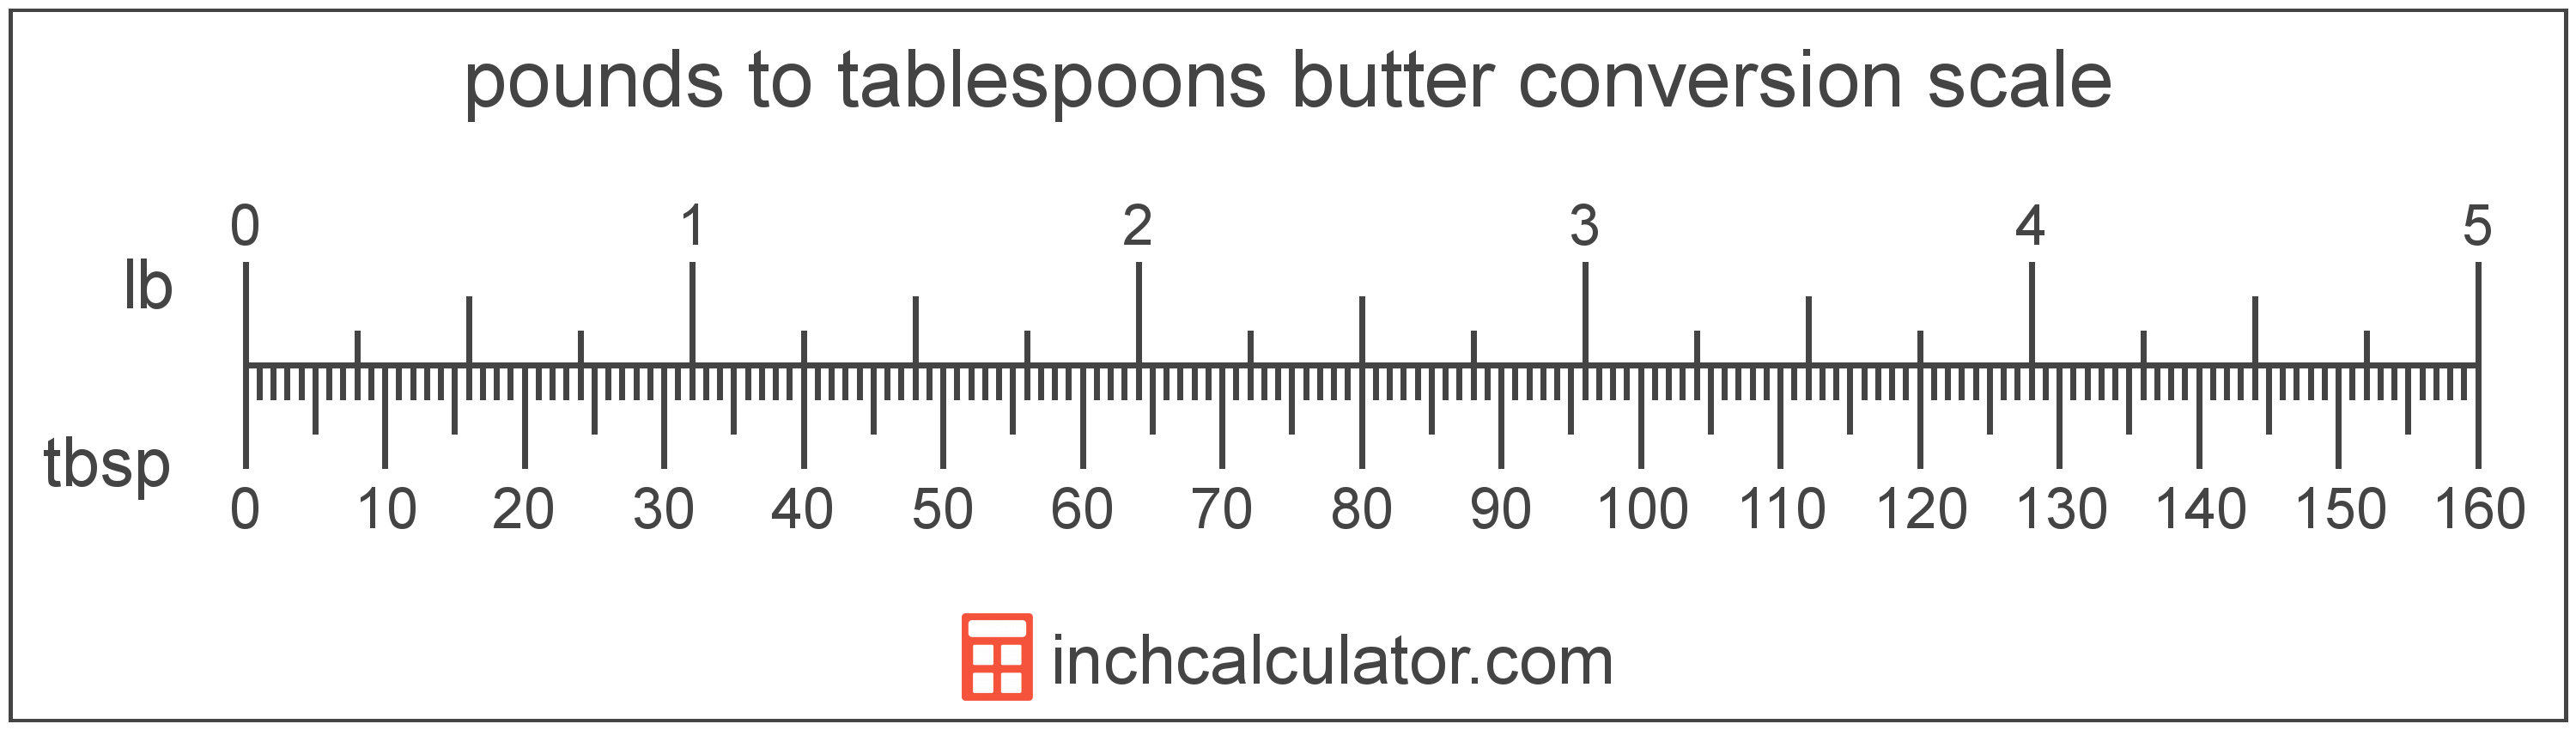 conversion scale showing tablespoons and equivalent pounds butter values